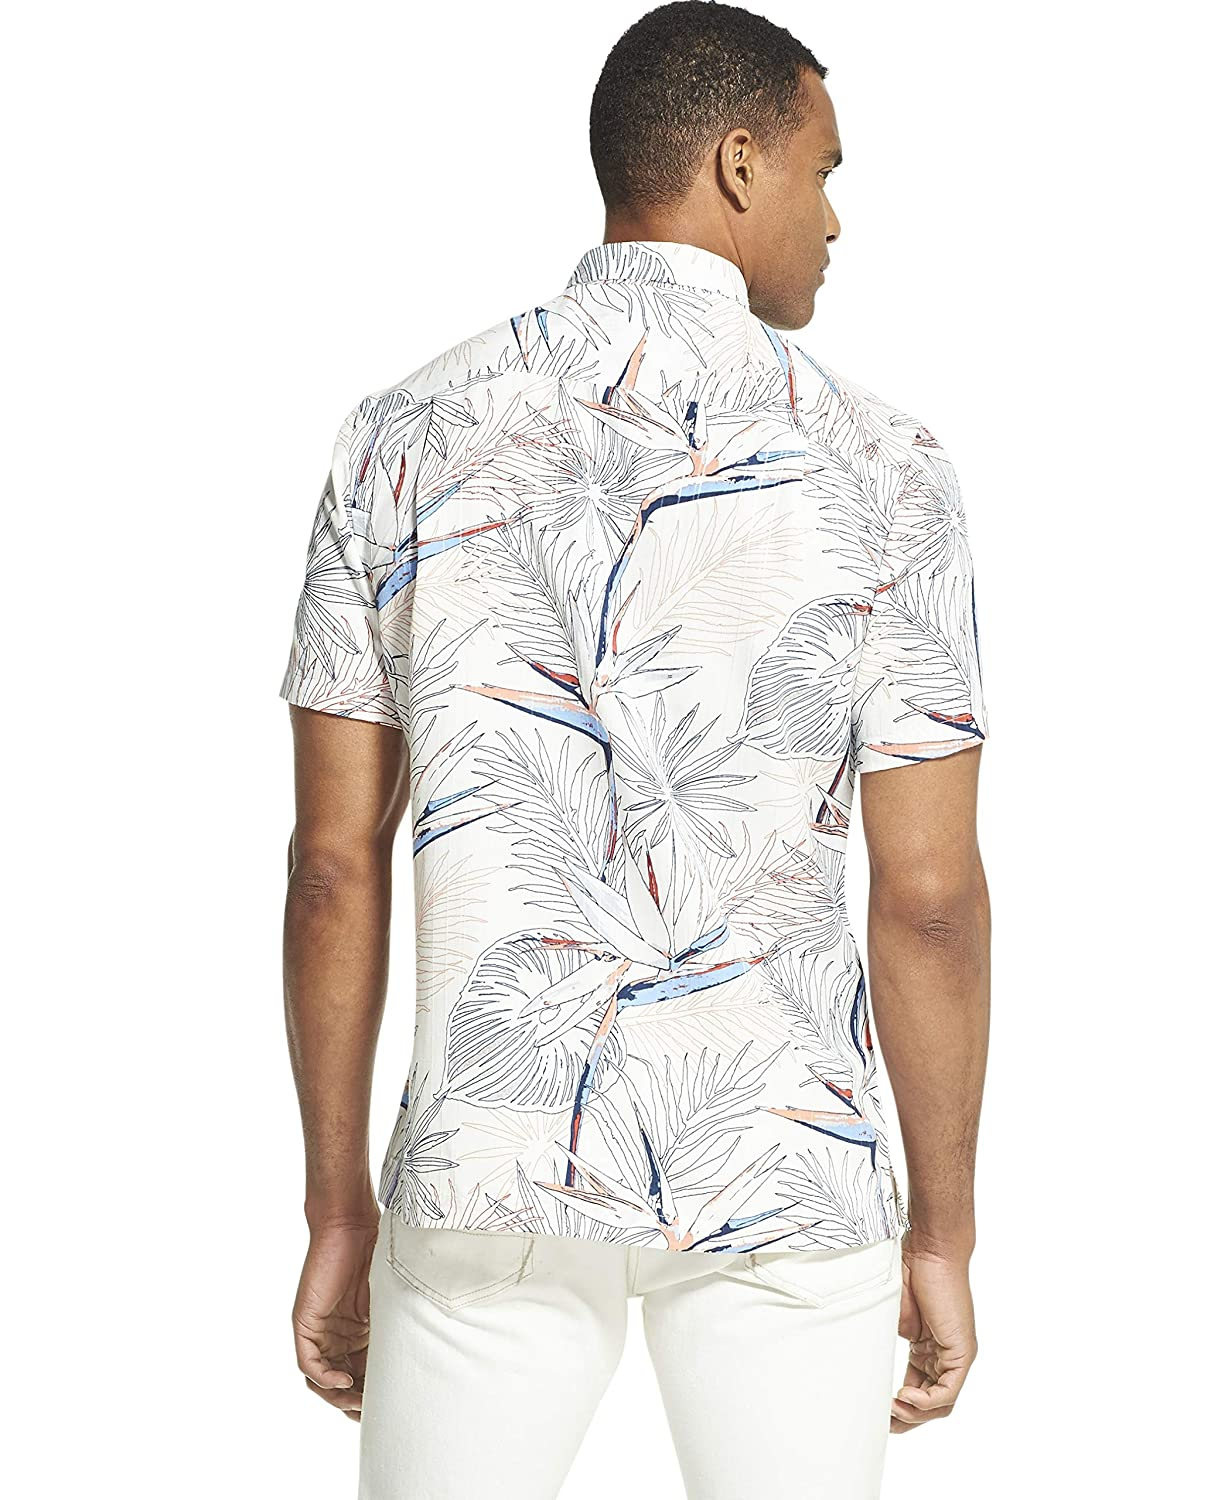 Van Heusen Mens Air Tropical Print Short Sleeve Button Down Shirt Button Down Shirt